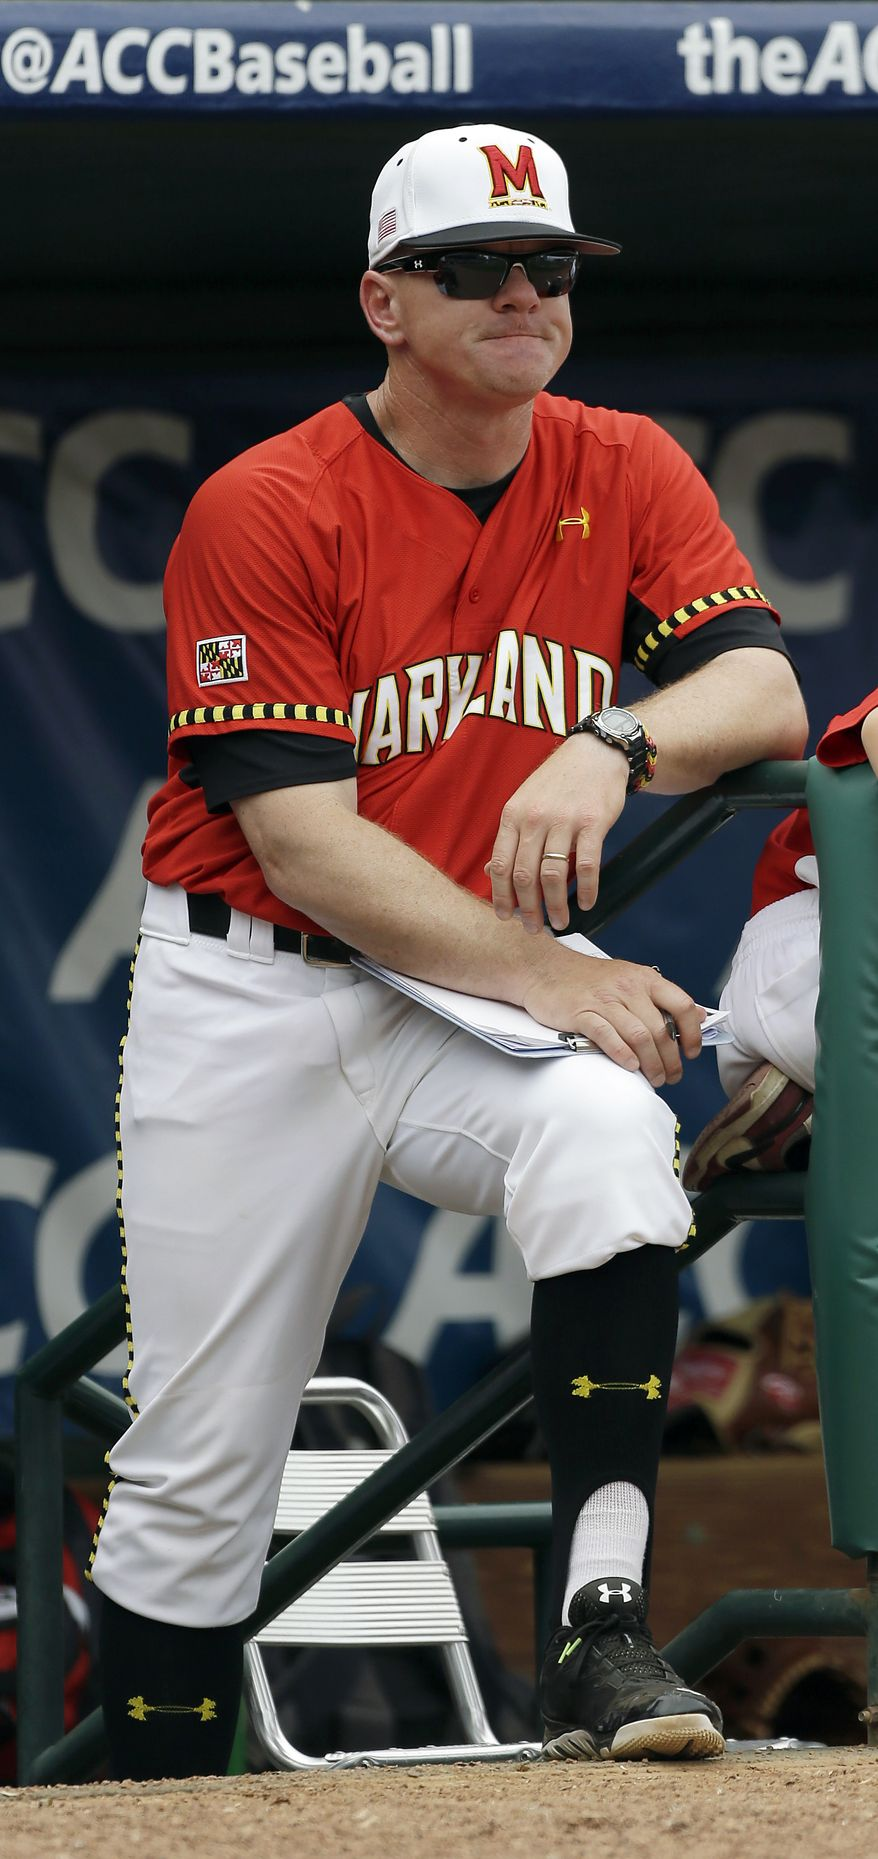 Maryland head coach John Szefc  watches the action against Georgia Tech from the dugout in the fifth inning during the championship game of the Atlantic Coast Conference baseball tournament in Greensboro, N.C., Sunday, May 25, 2014. Georgia Tech won 9-4. (AP Photo/Bob Leverone)